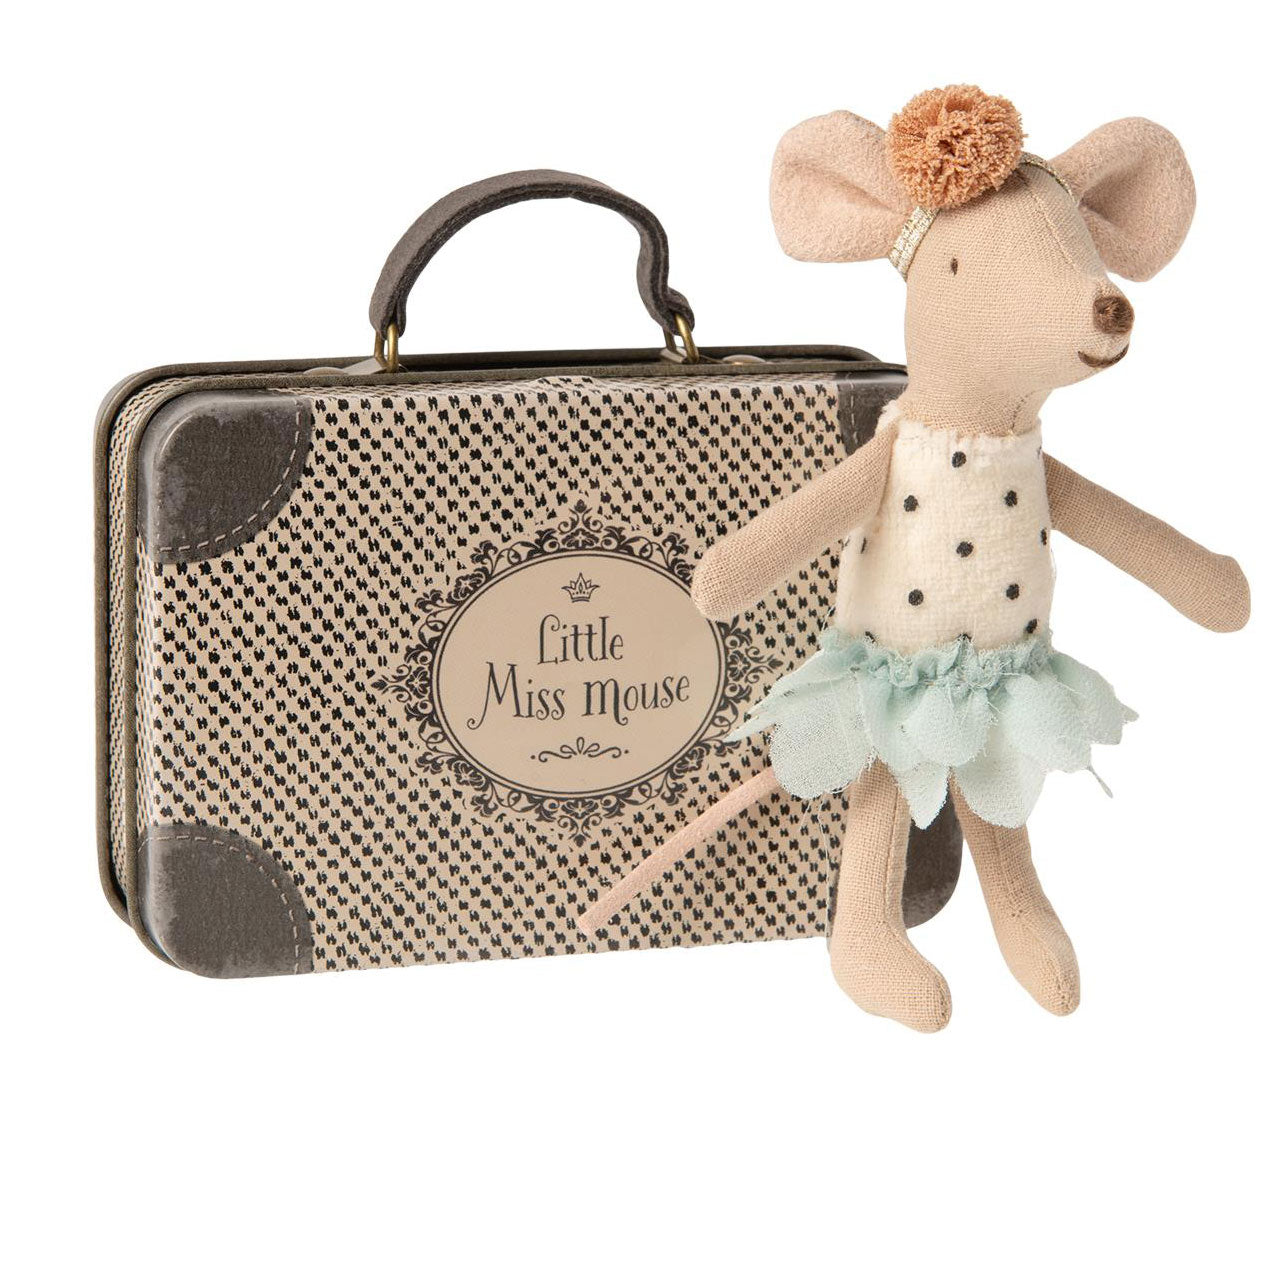 Maileg Little Miss Mouse in Suitcase at Bonjour Baby Baskets